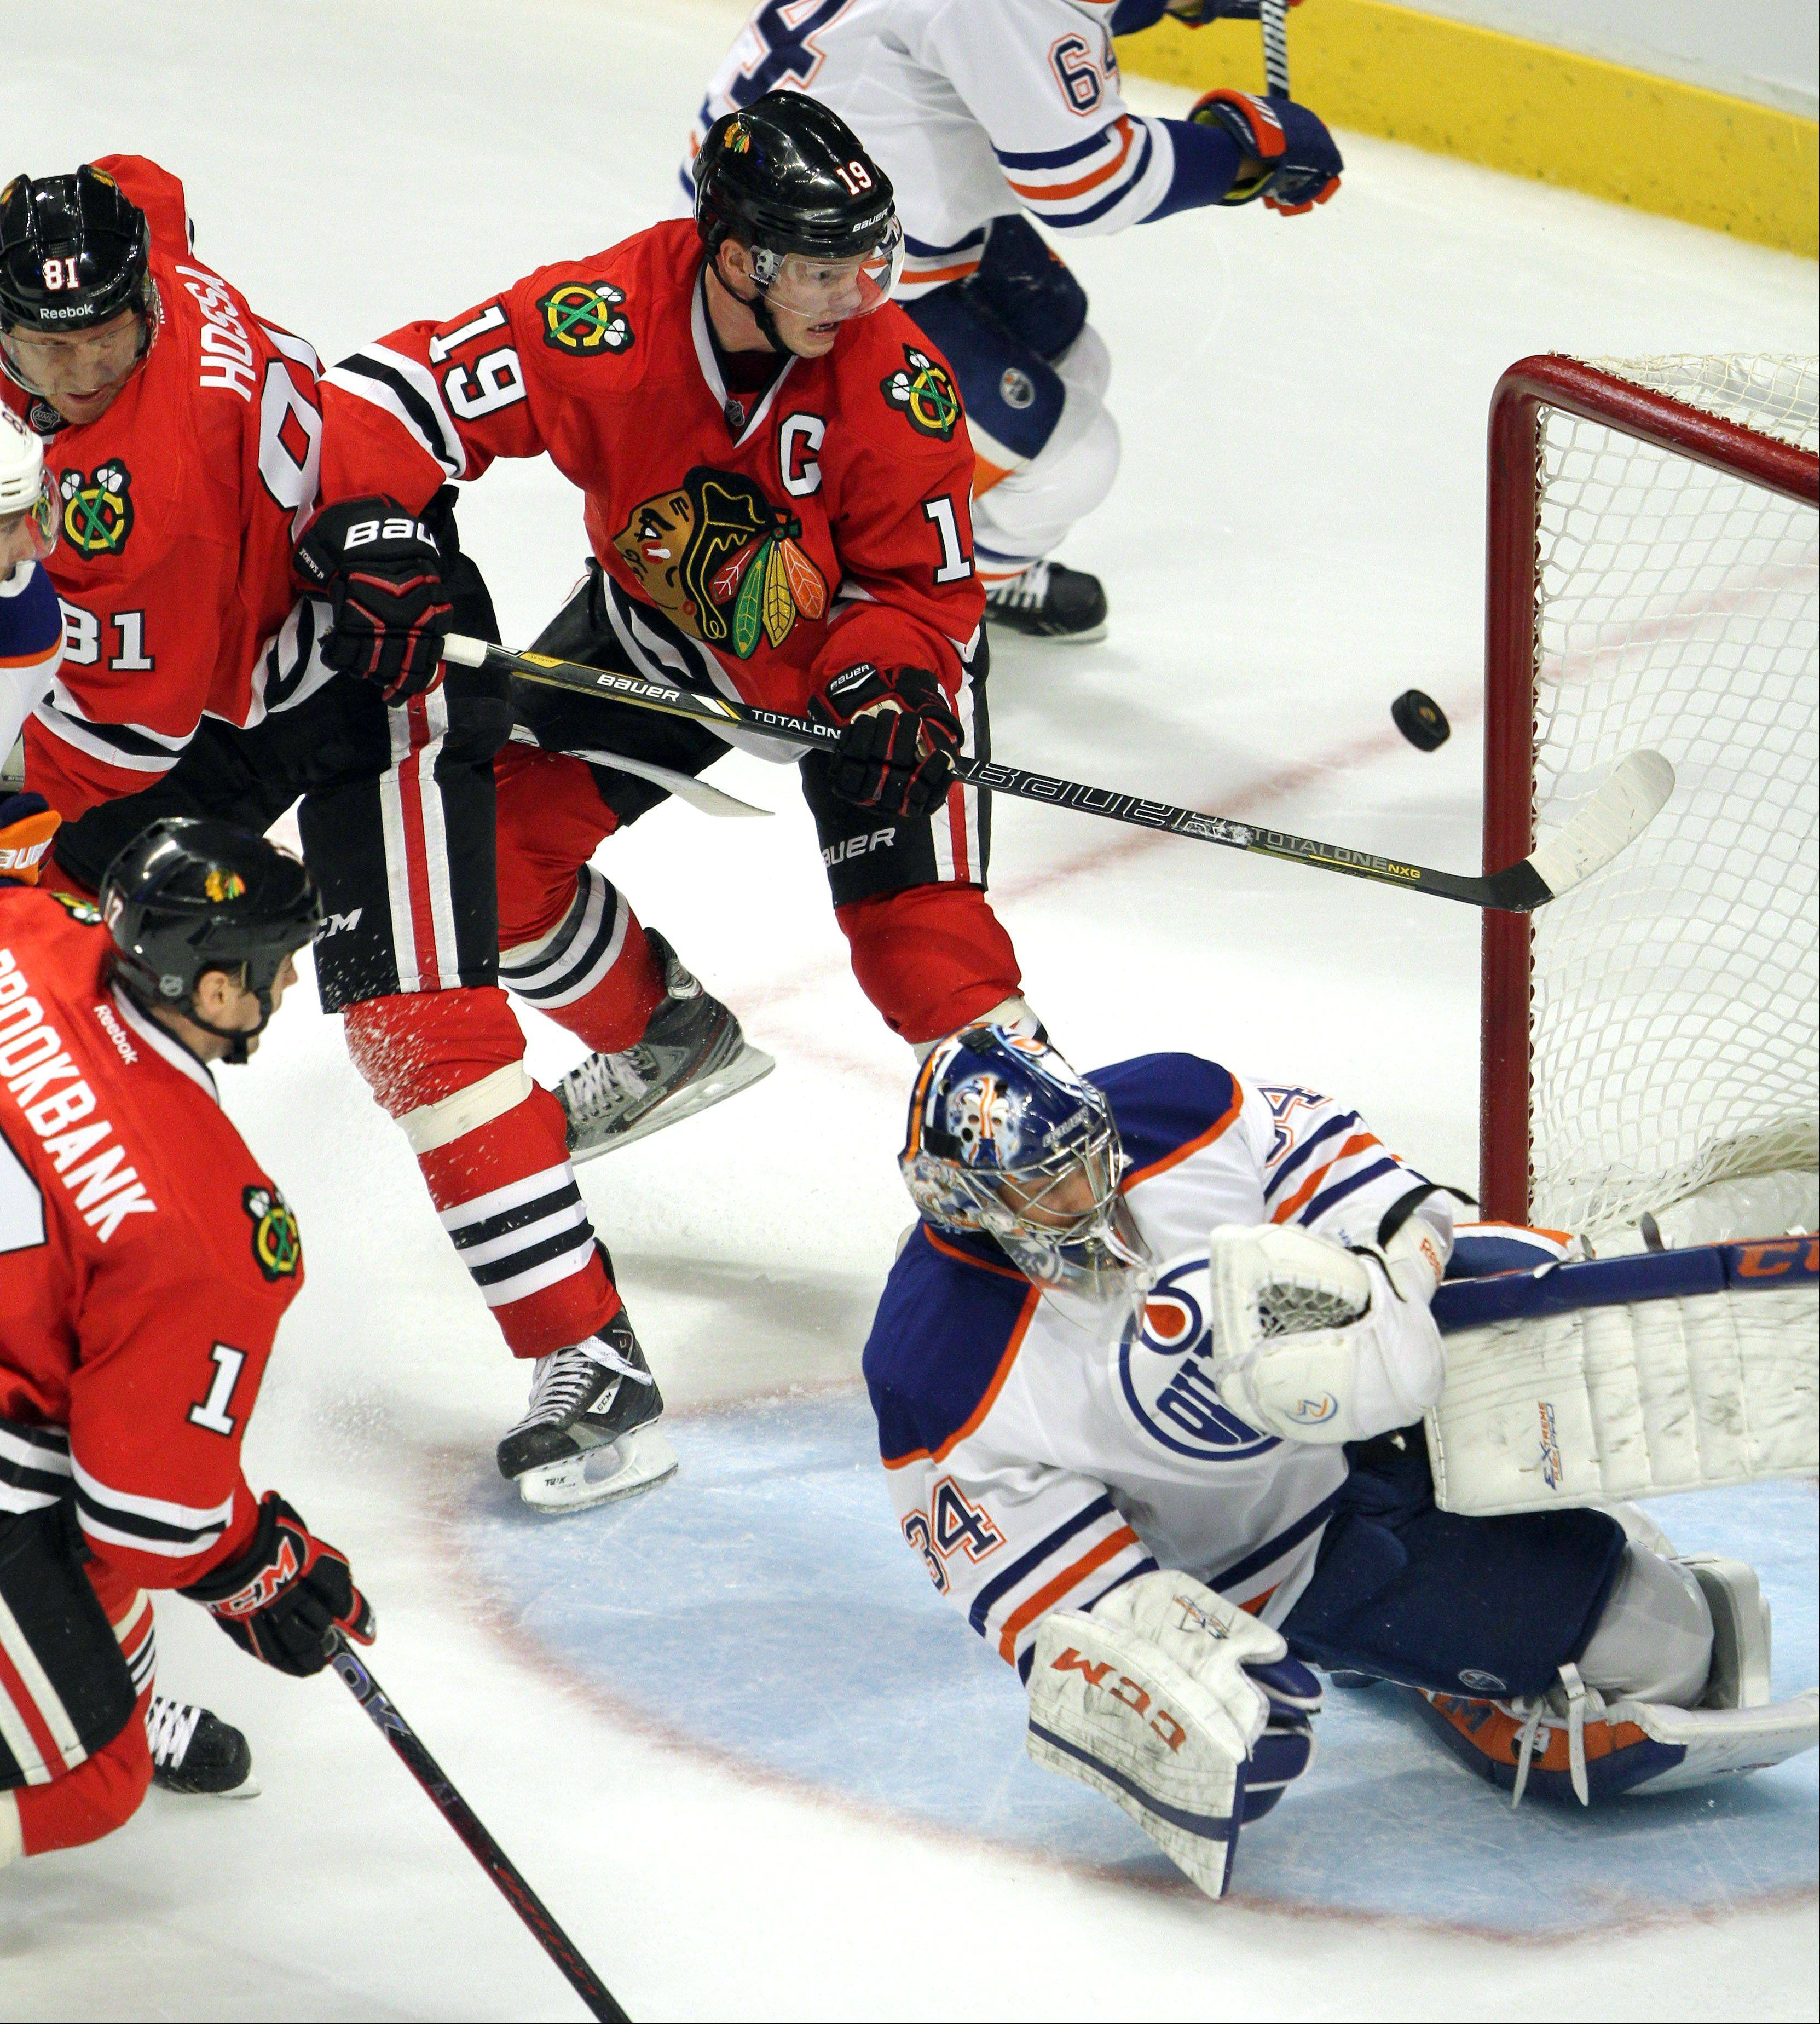 Chicago Blackhawks center Jonathan Toews tries to control a bouncing puck as Edmonton Oilers goalie Yann Danis tries to make the save during their game Sunday night at the United Center in Chicago.